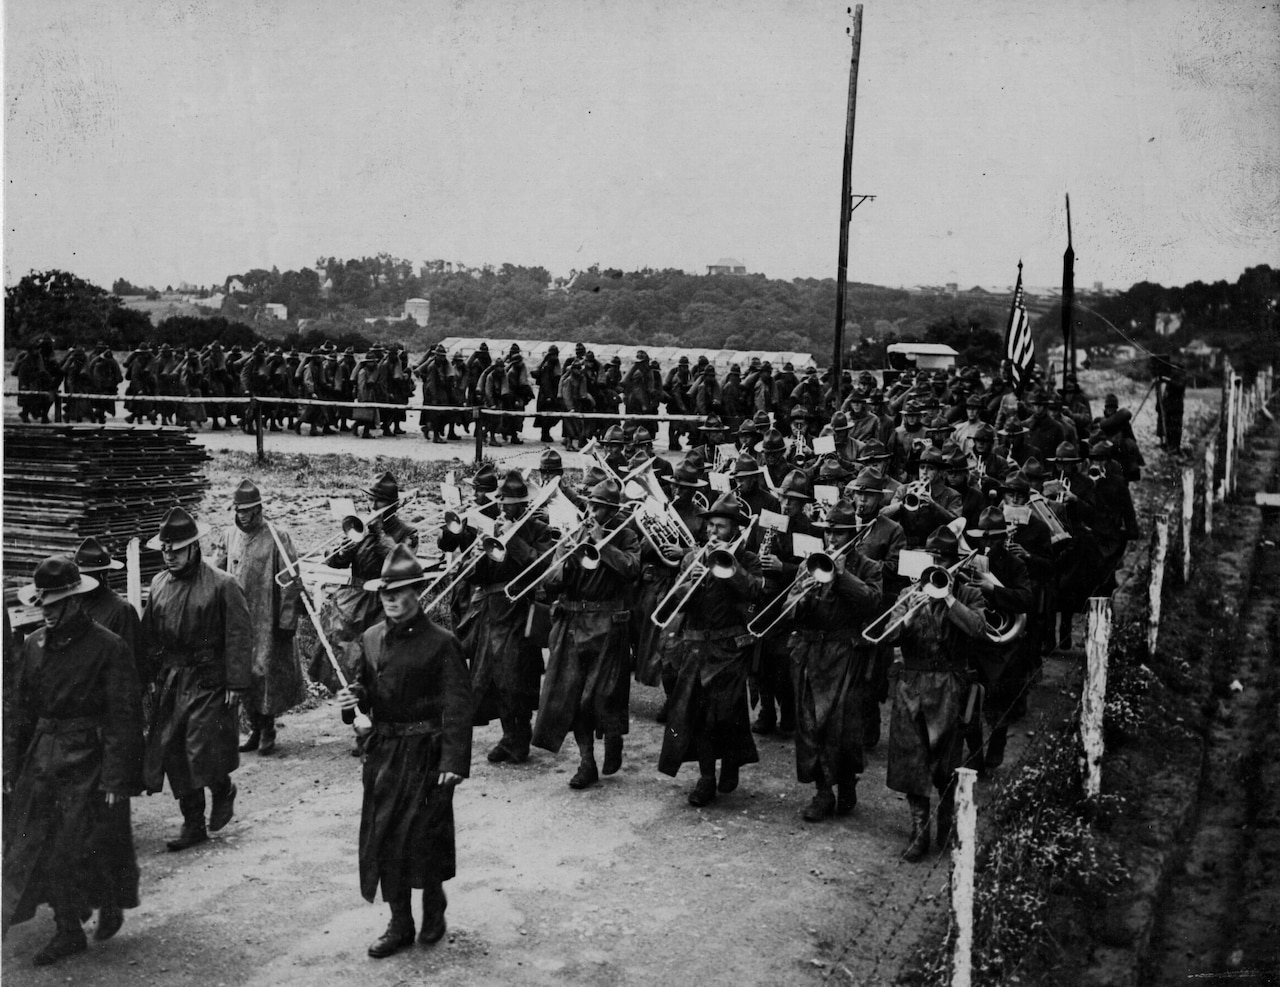 An American detachment leaves the docks of Le Havre, France, for the Western Front in July 1918. Army photo